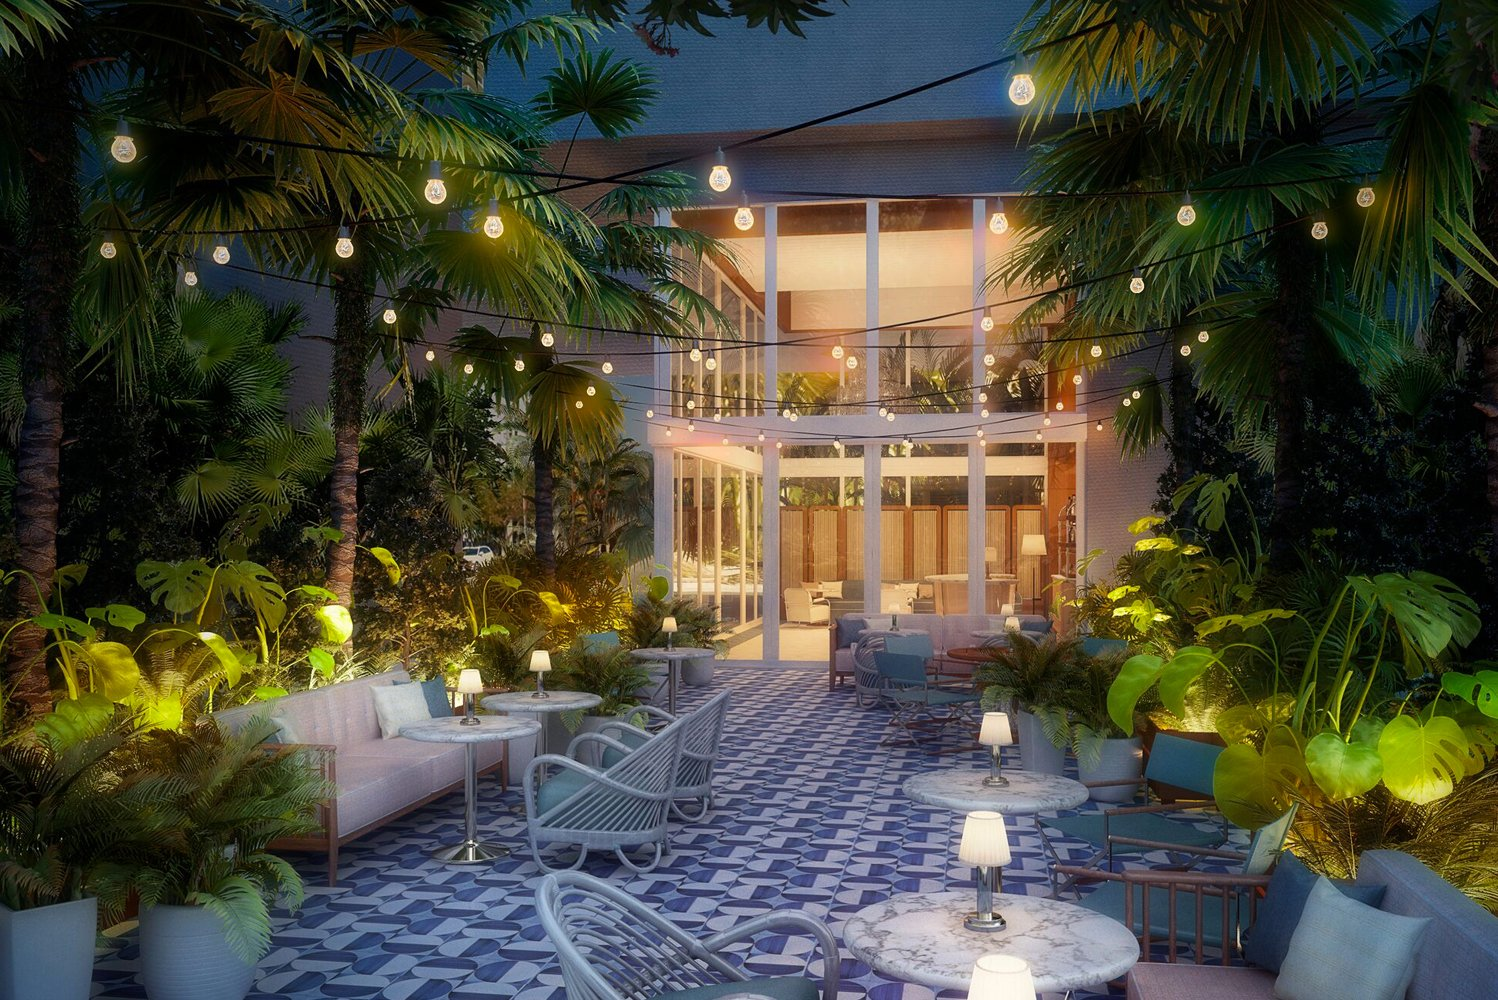 The restaurant will have indoor and outdoor seating in Miami modern style.